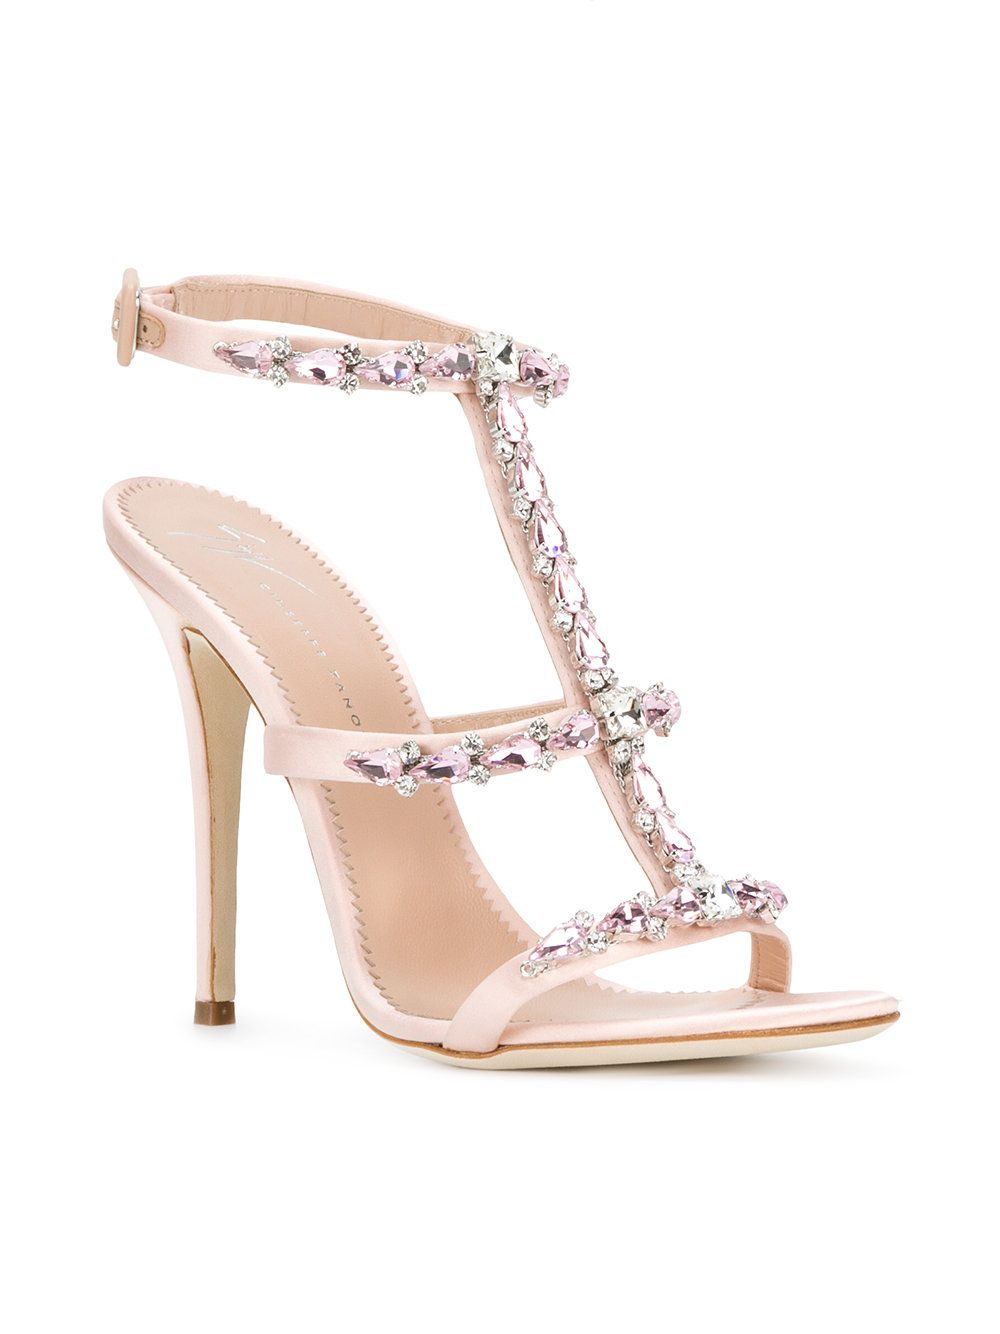 rhinestone T-bar sandals - Pink & Purple Giuseppe Zanotti Clearance Many Kinds Of Cost Order Cheap High Quality NBxcO